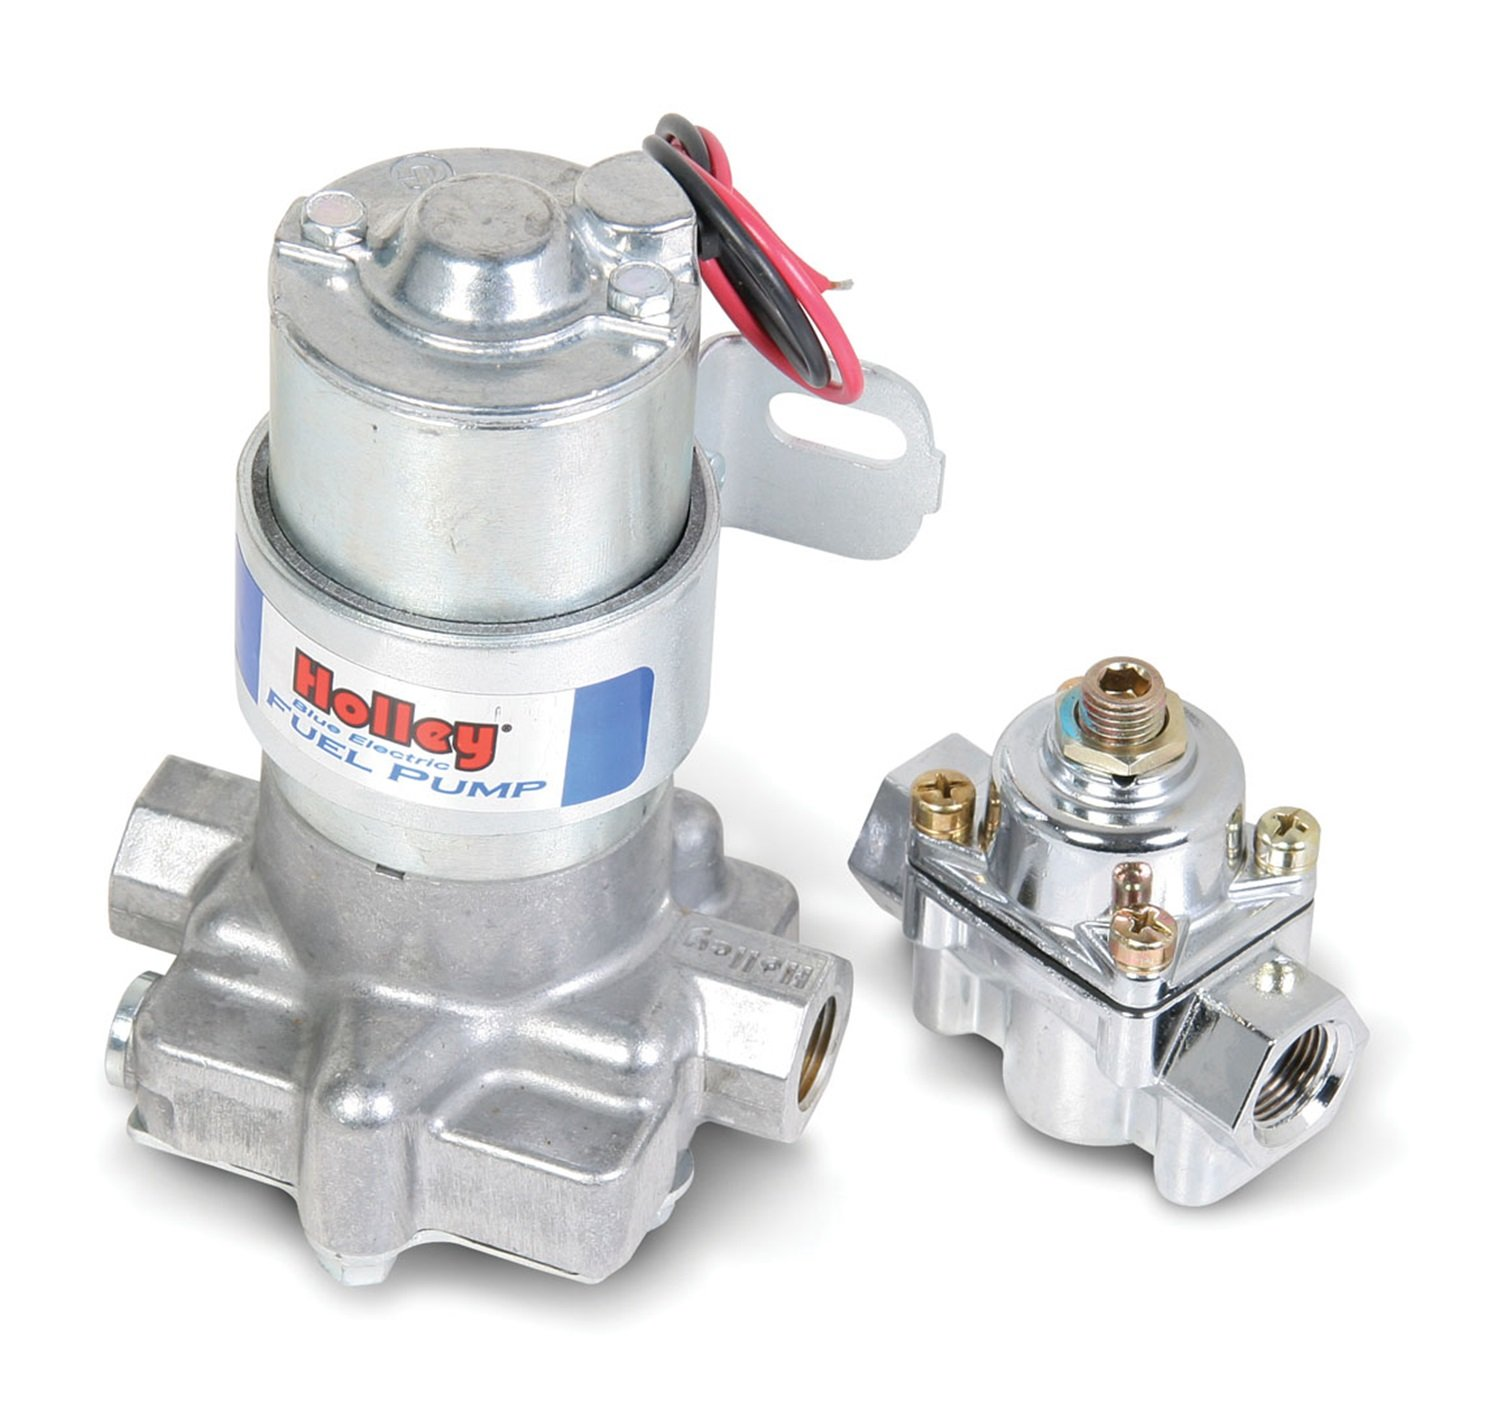 2. Holley L12-802-1 Electric Fuel Pump with Regulator